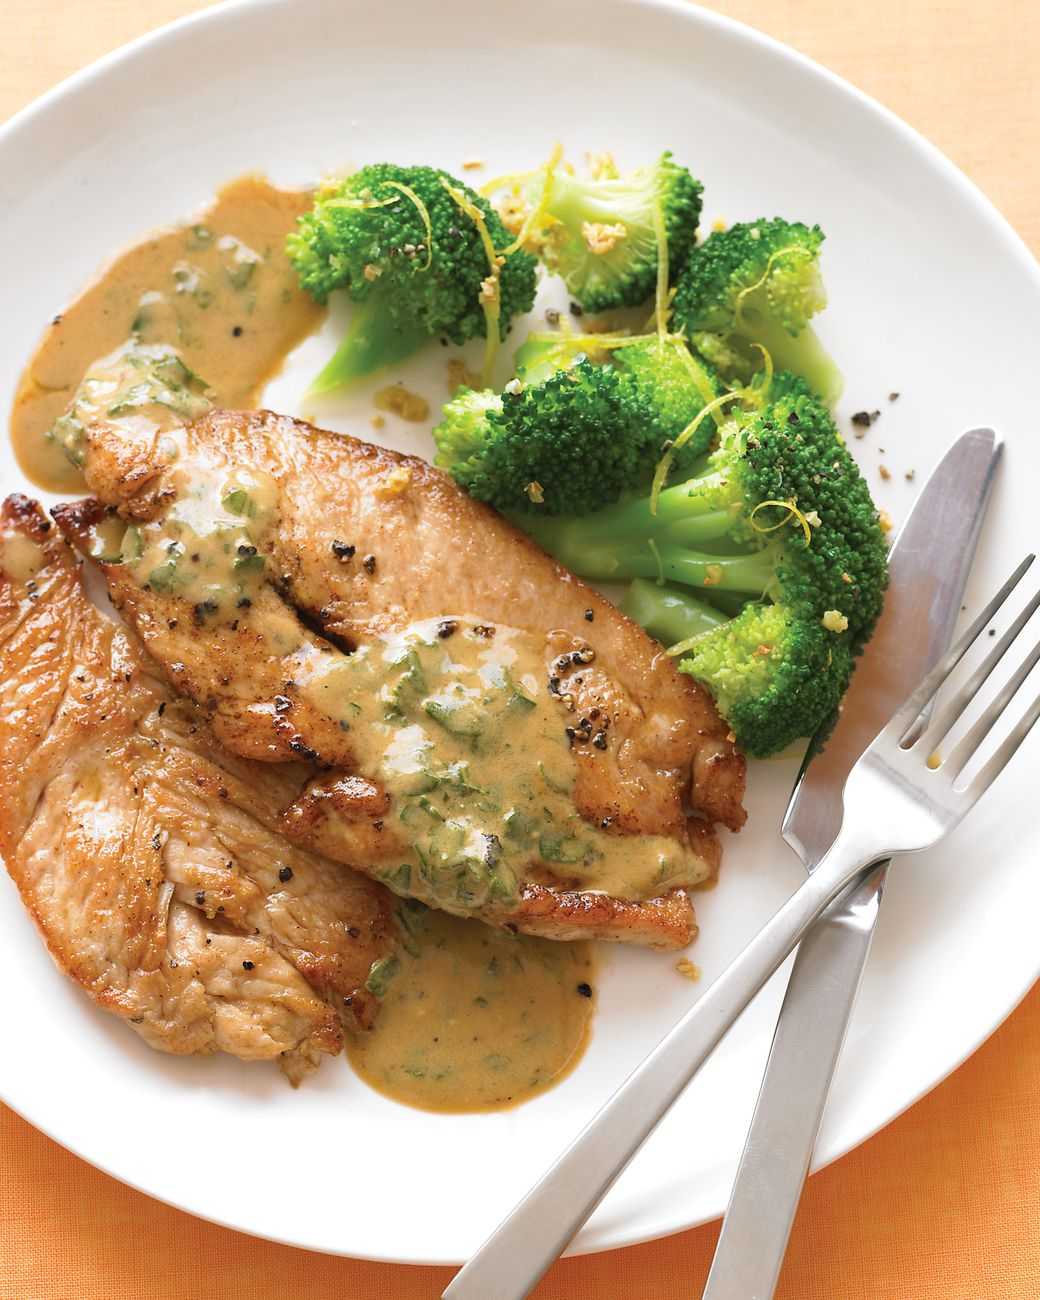 64 Easy Dinner Recipes For Two: Pan-Seared Turkey Cutlets With Wine Sauce